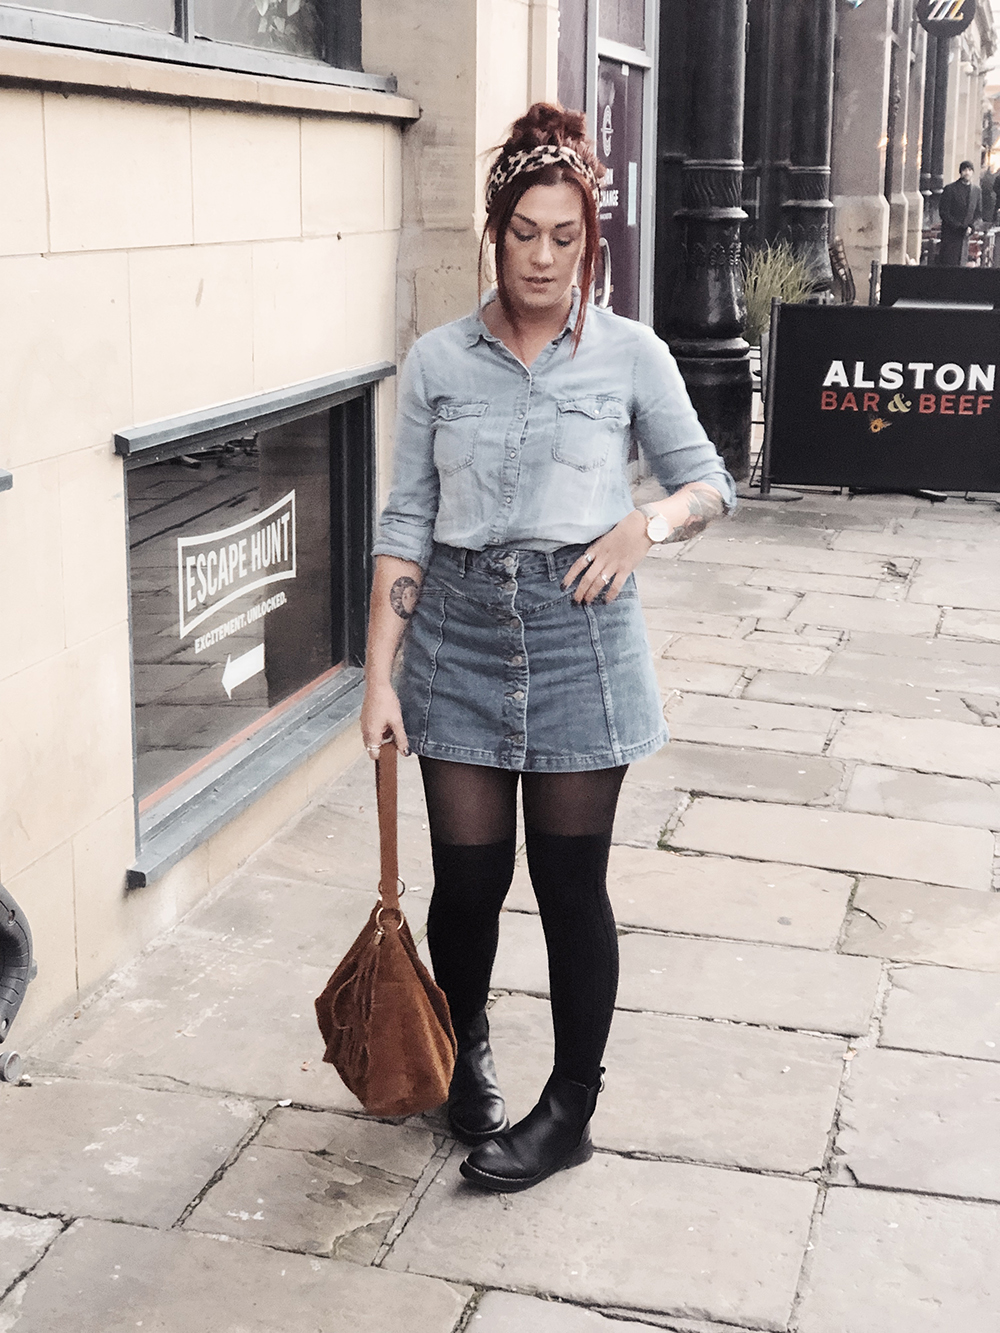 Double denim outfit inspired by Holly Willoughy #thismamastyle #mumstyle #over30fashion #mumfashion #momstyle